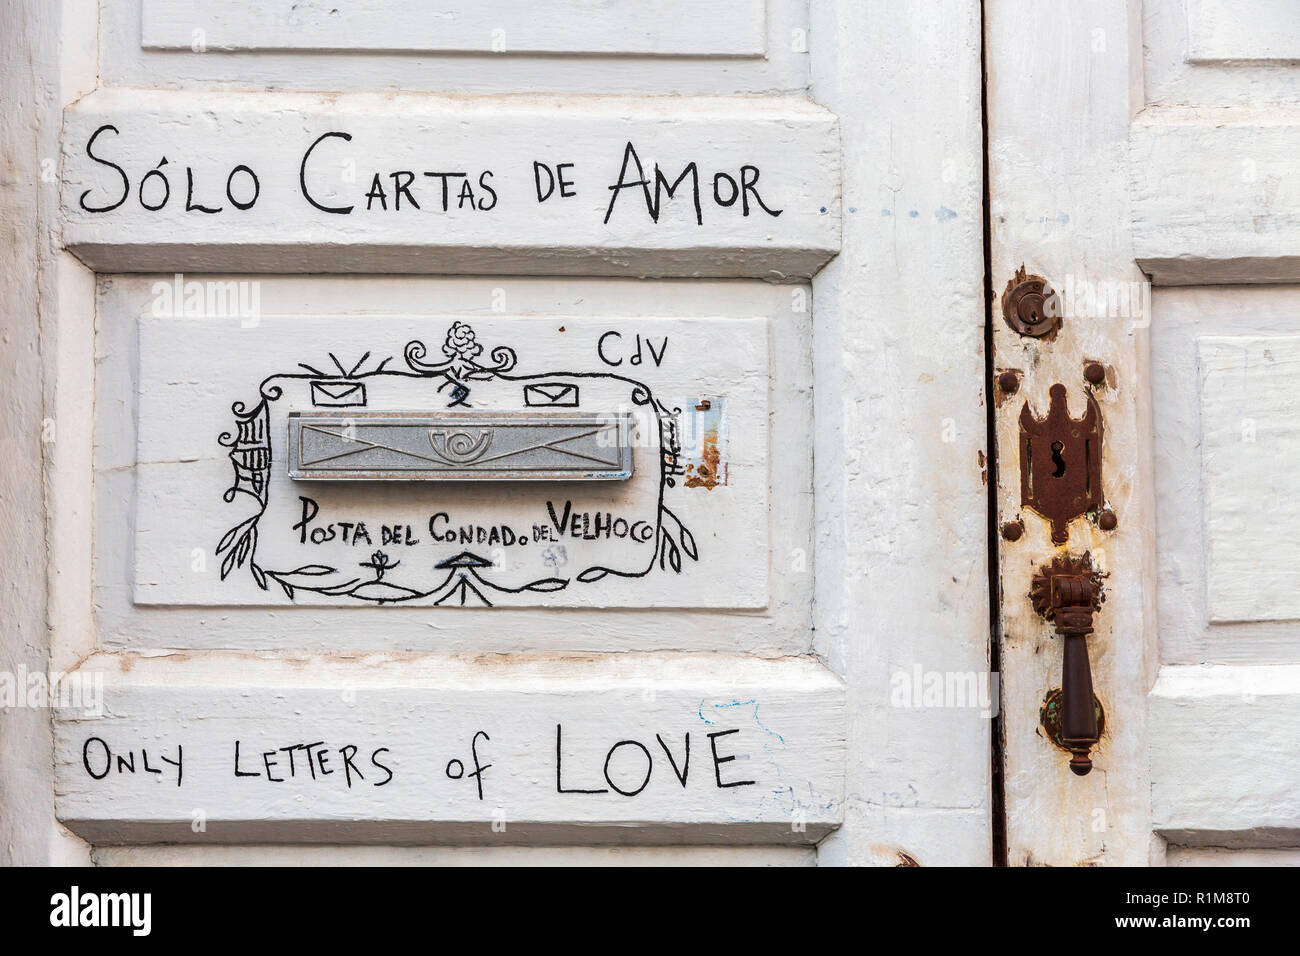 letterbox-detail-on-front-door-with-writing-saying-only-letters-of-love-solo-cartas-de-amor-in-spanish-and-english-languages-in-santa-cruz-de-la-pa-R1M8T0.jpg